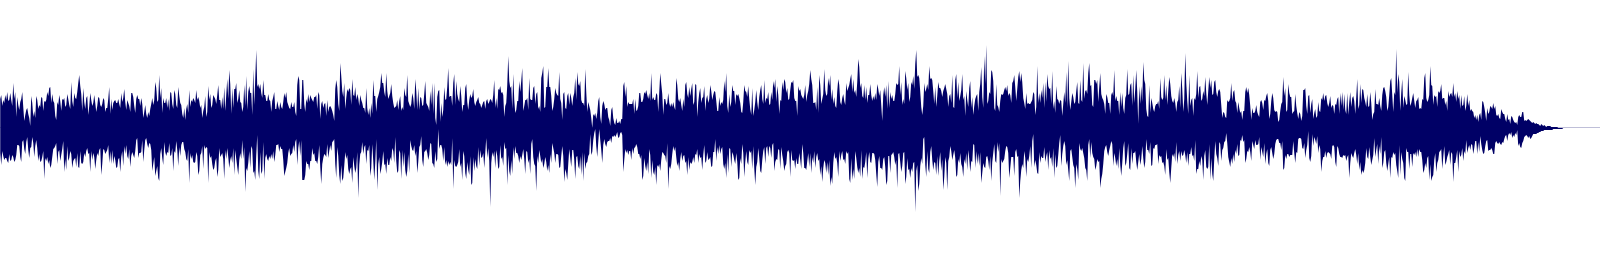 waveform of track #132101